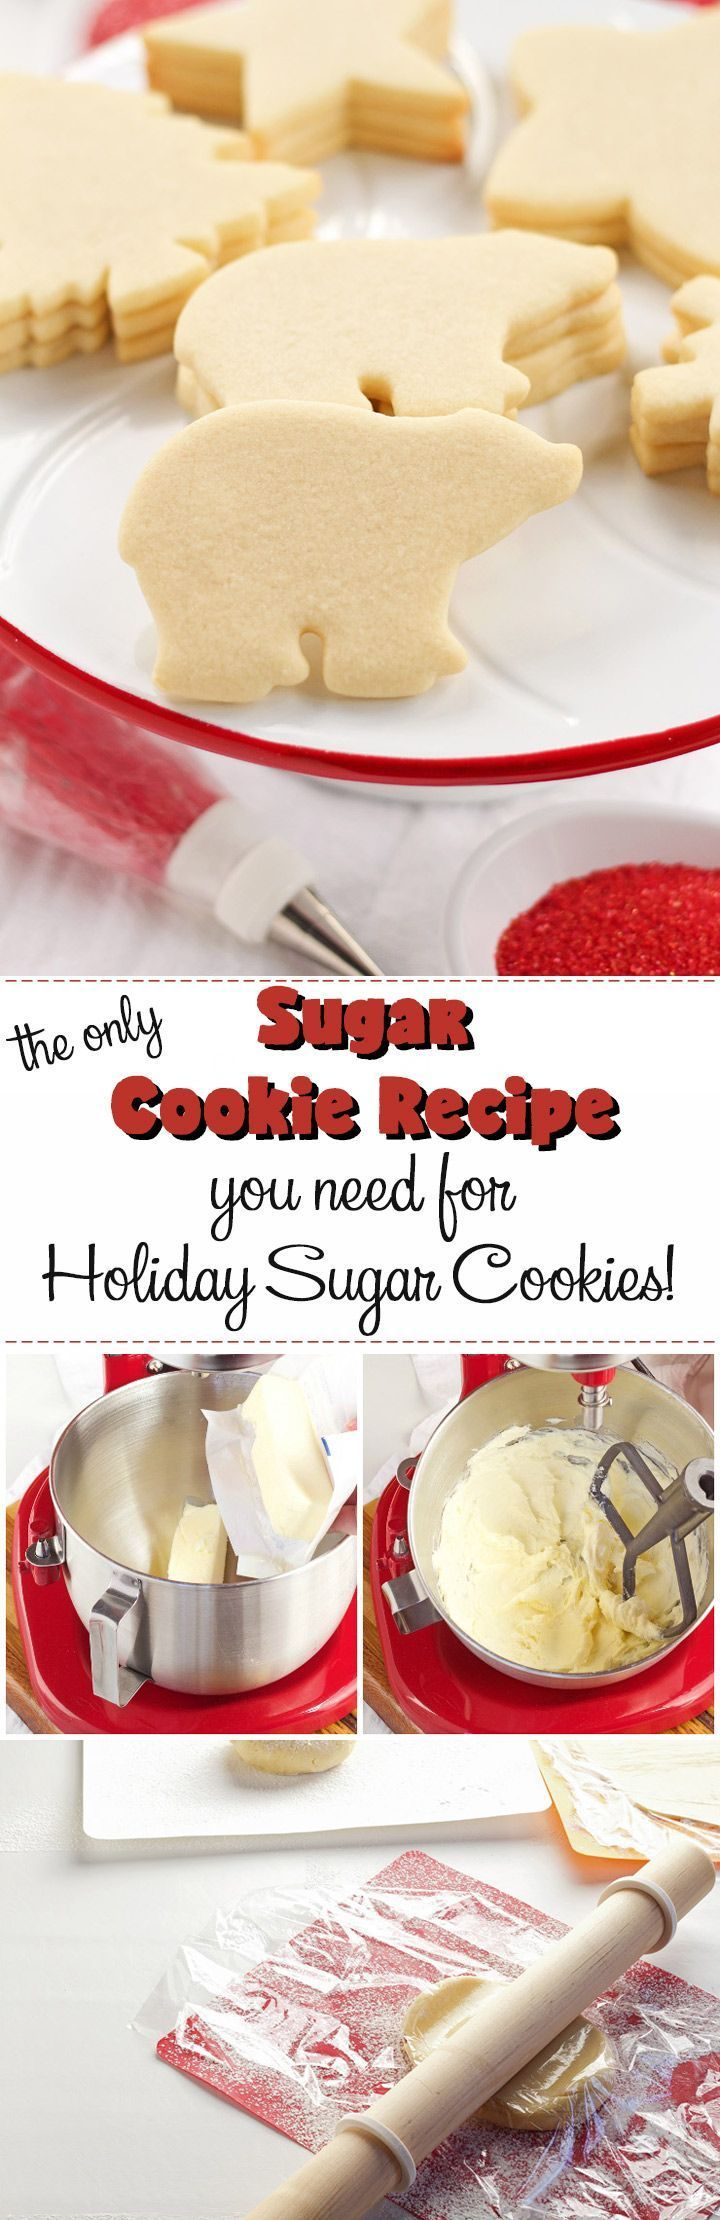 This is the ONLY Sugar Cookie Recipe You'll NEED for your Holiday Sugar Cookies   The Bearfoot Baker